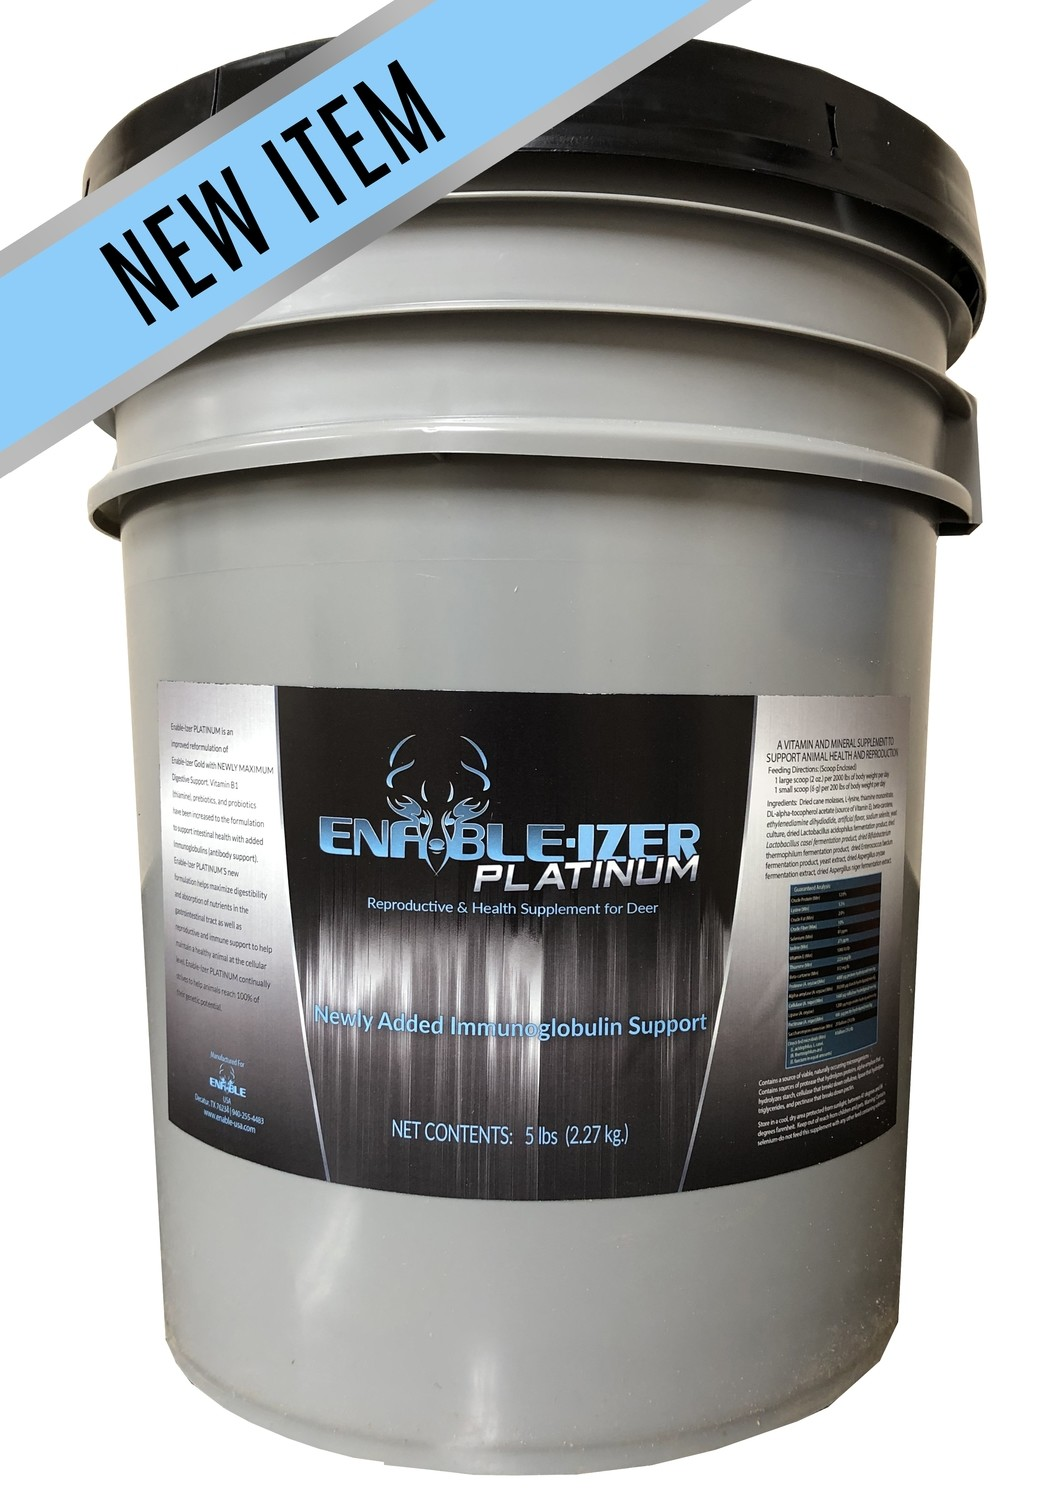 Enable-Izer Platinum Bulk 5 Gallon